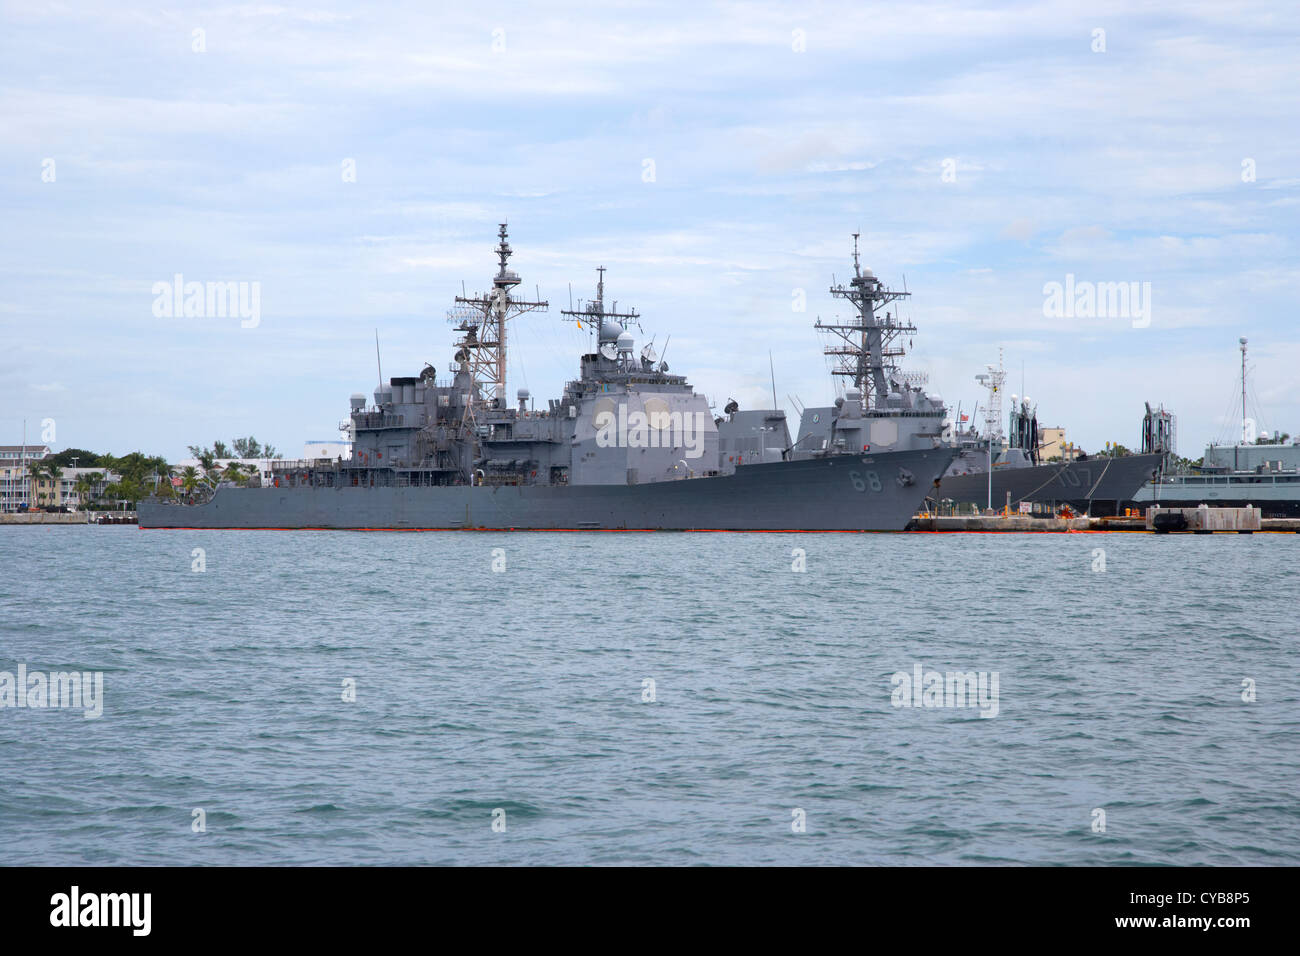 uss anzio guided missile cruiser and navy warships mole pier key west harbor florida usa - Stock Image